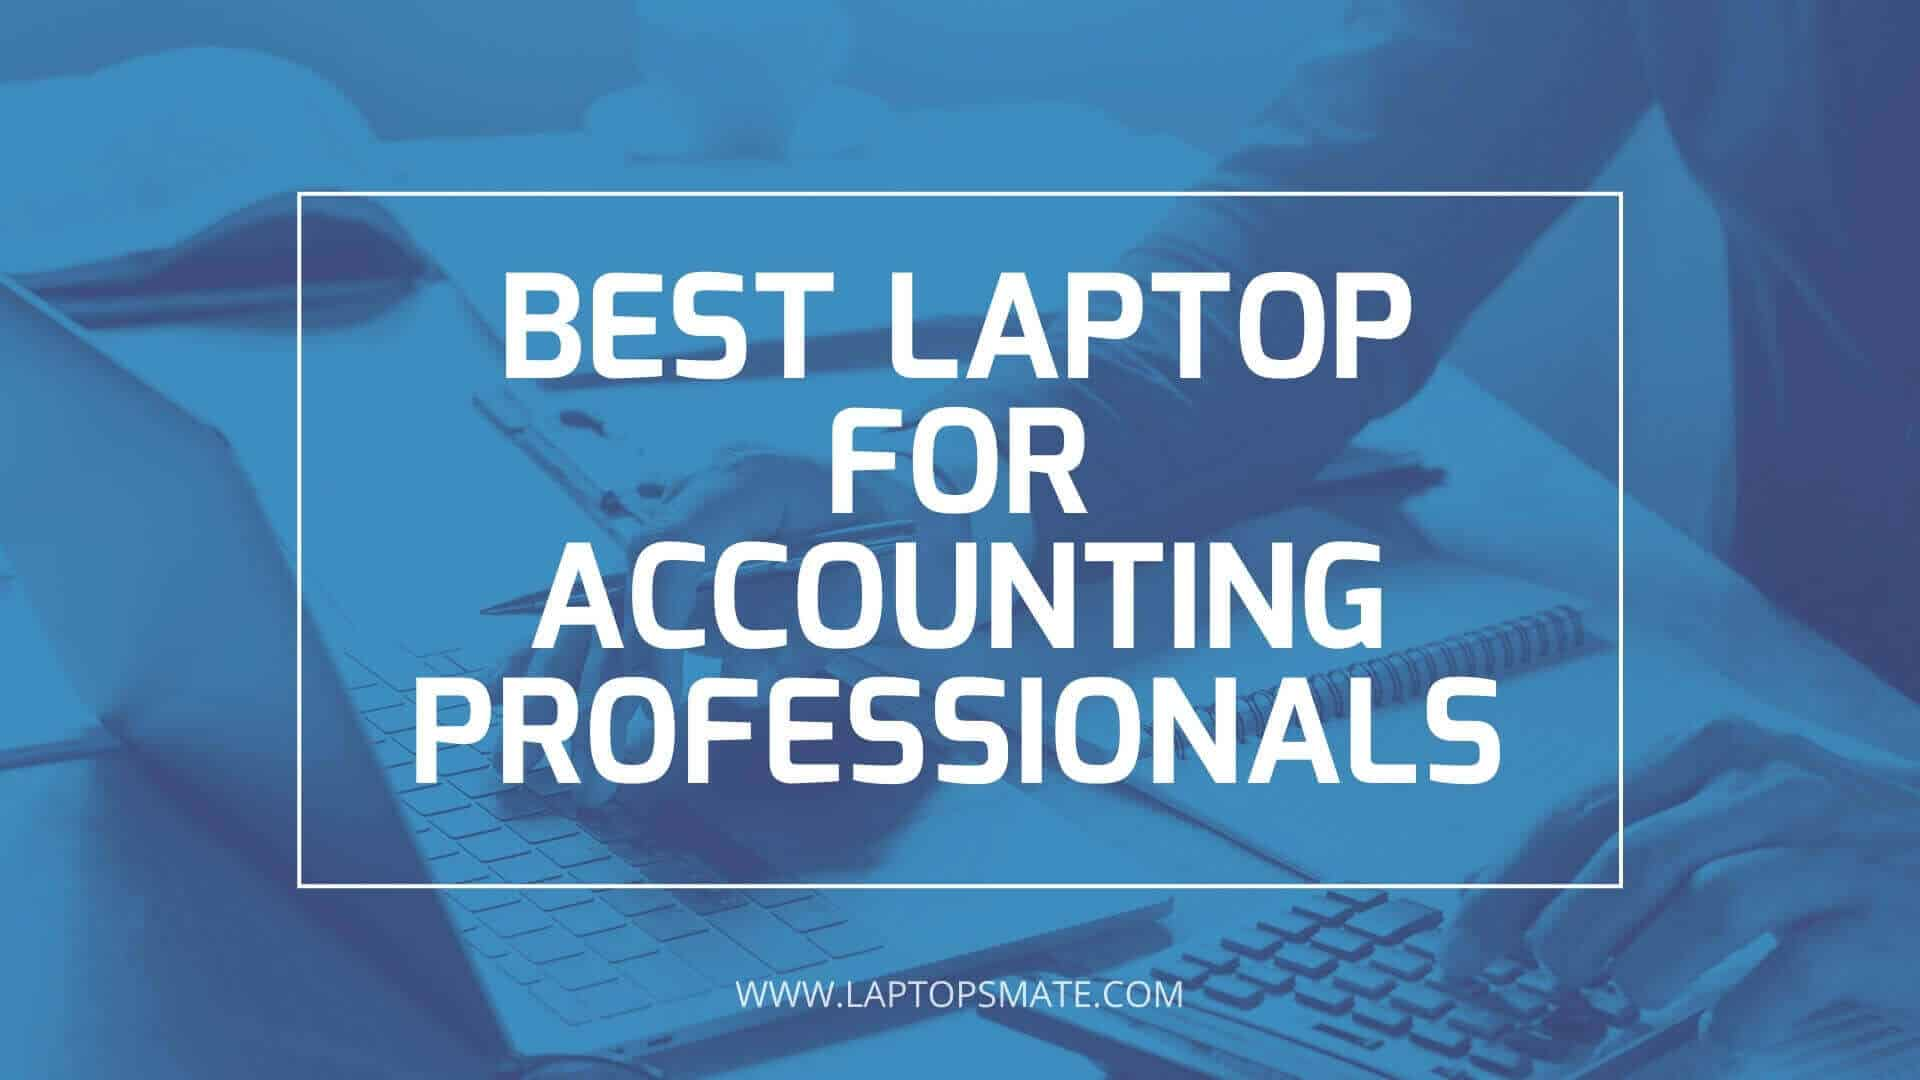 Best Laptop For Accounting Professionals